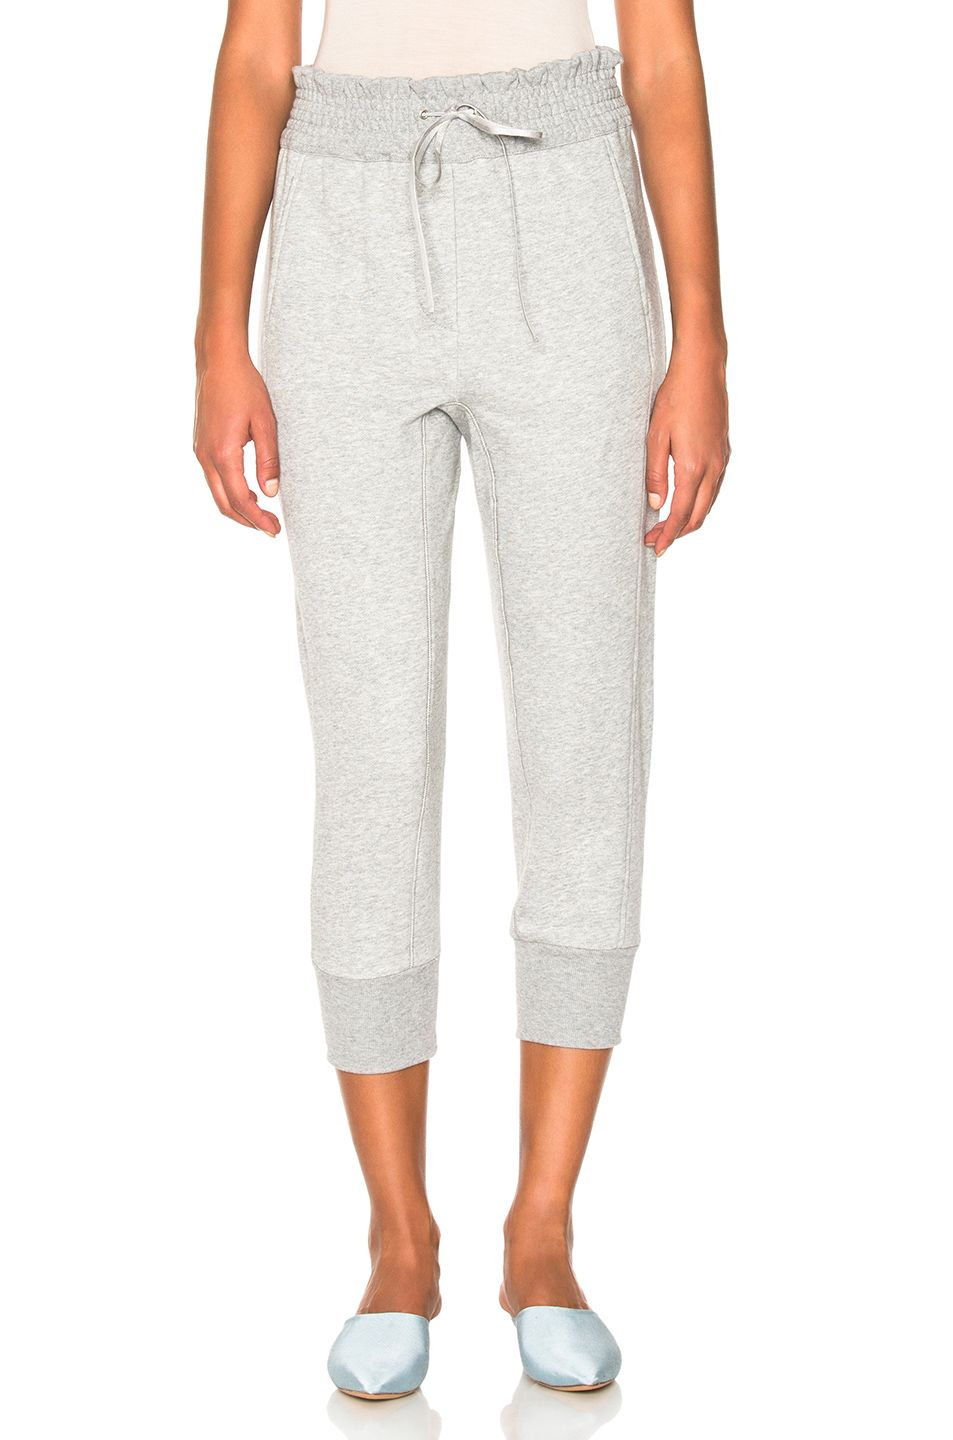 92a5a7f5b0e 3.1 PHILLIP LIM French Terry Jogger Pants. #3.1philliplim #cloth ...